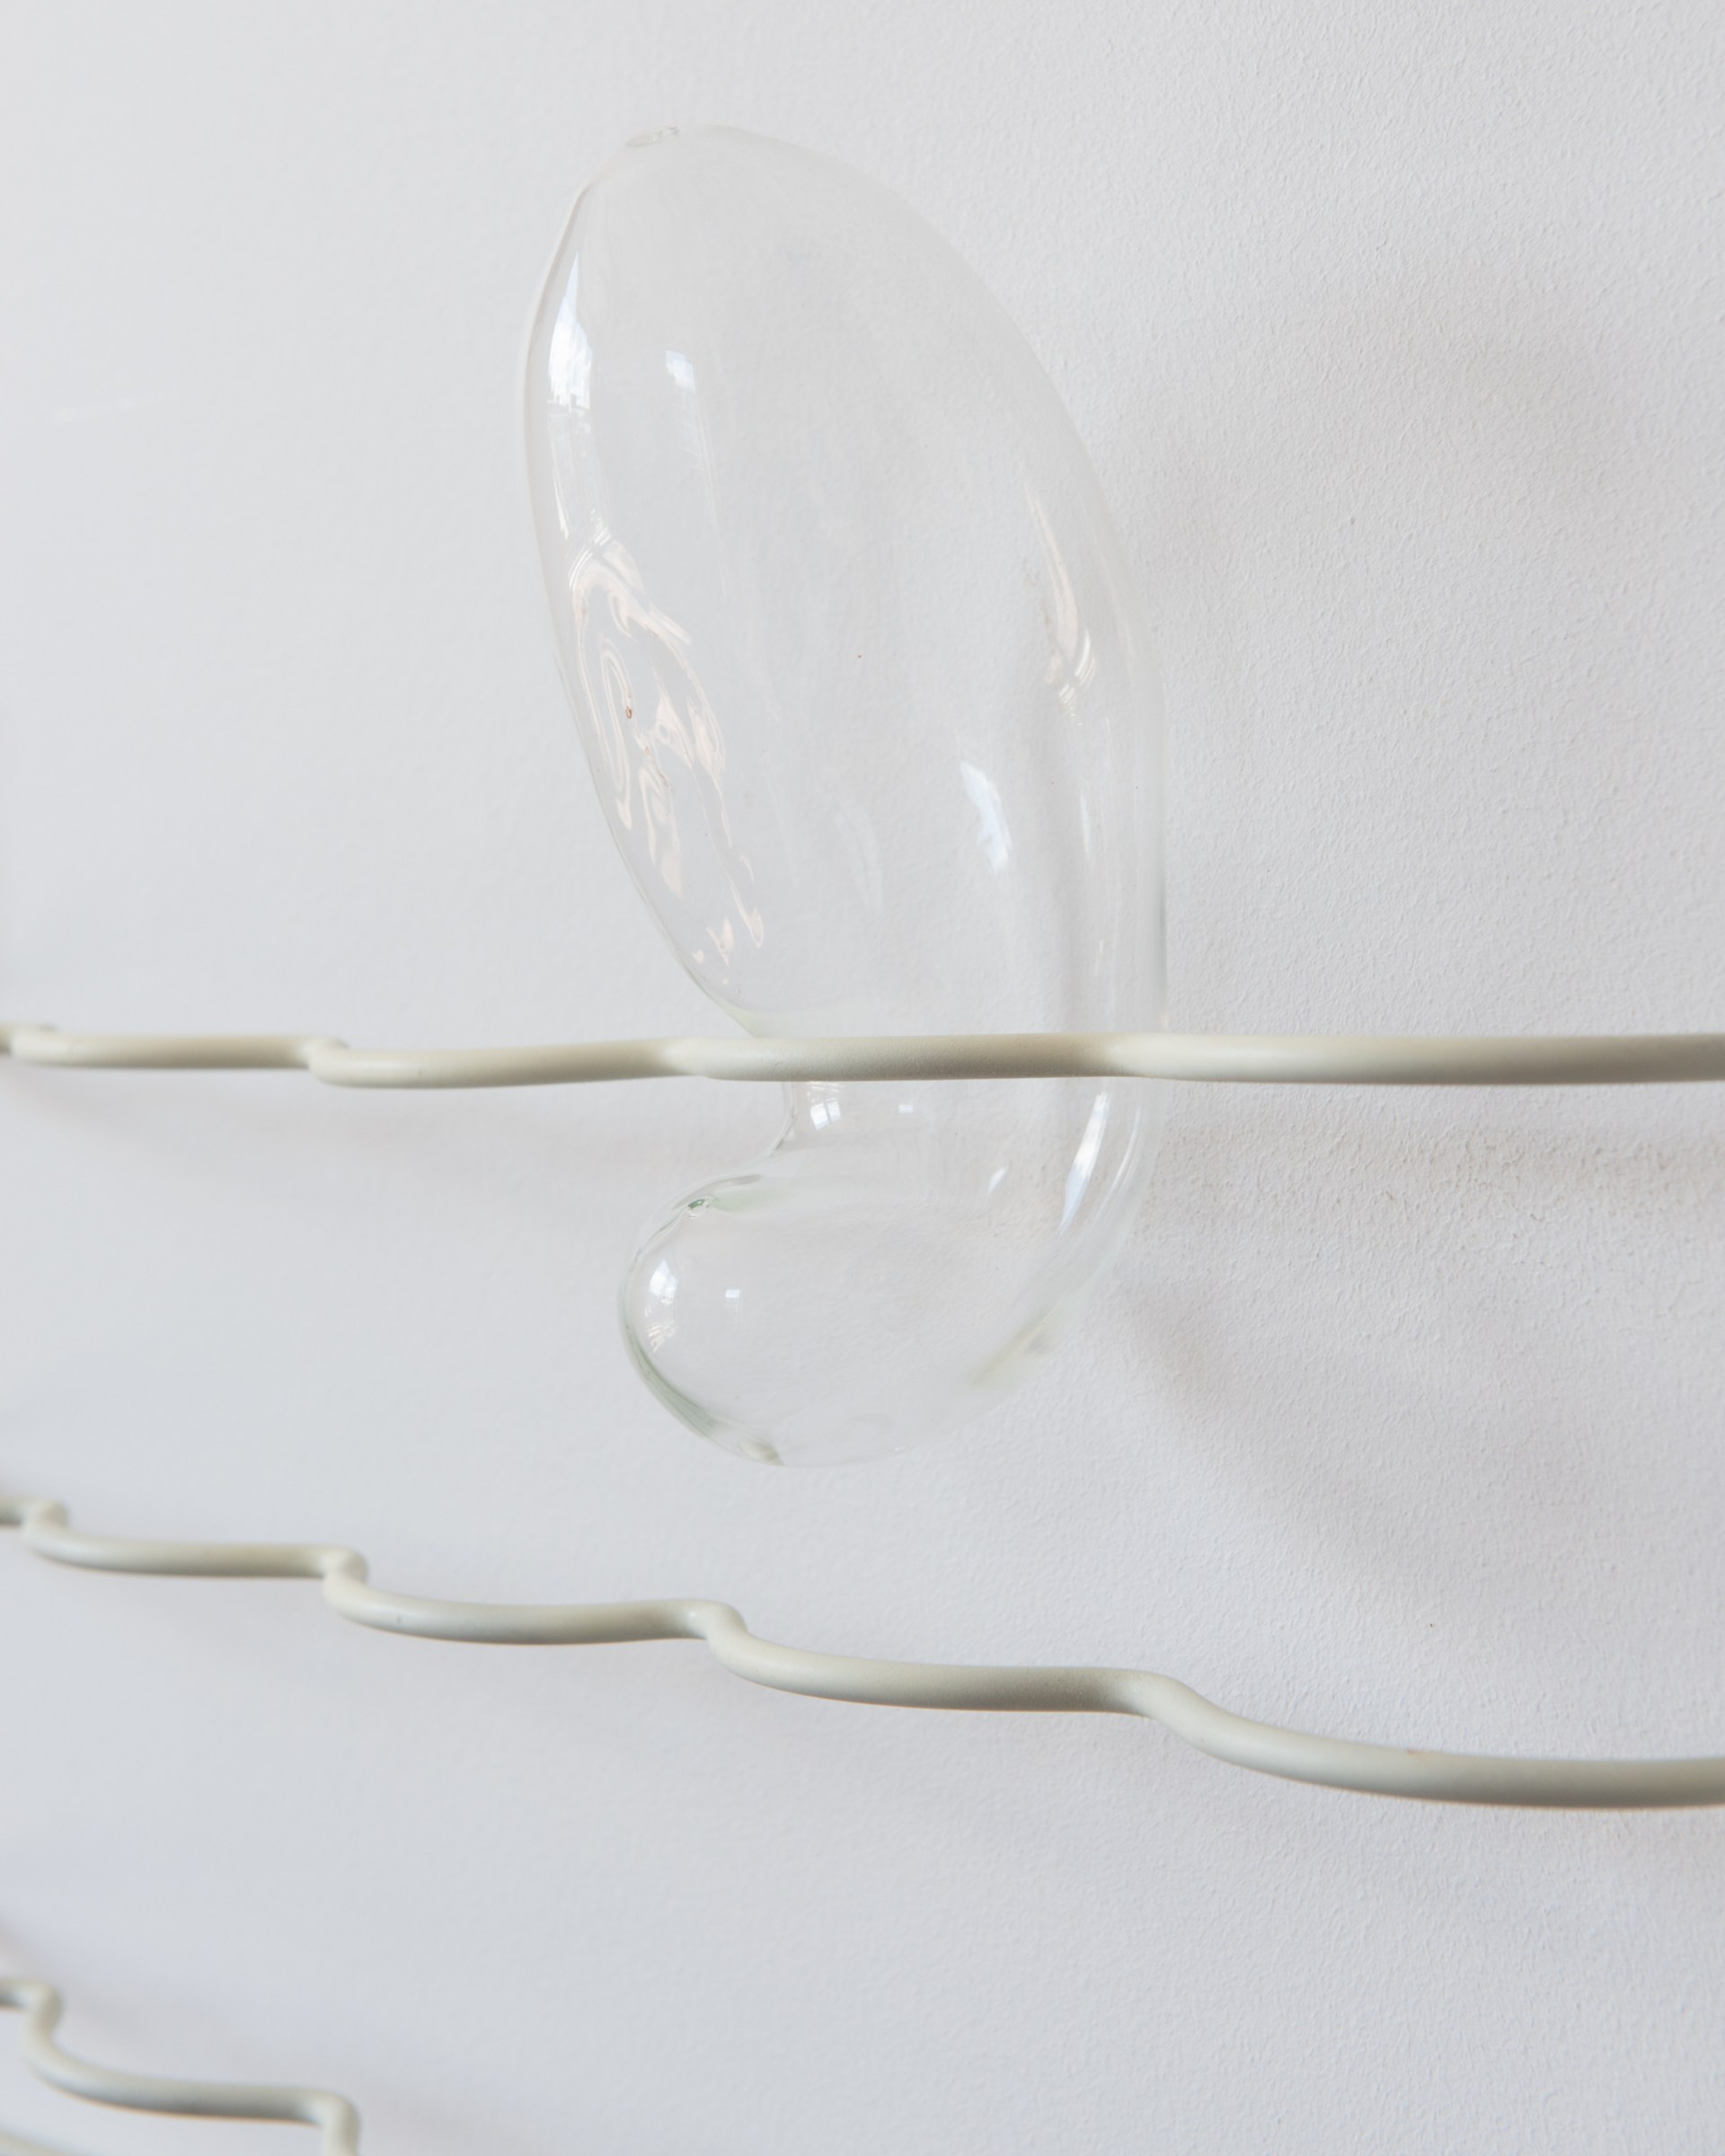 [Detail] Glass, powder coated stainless steel